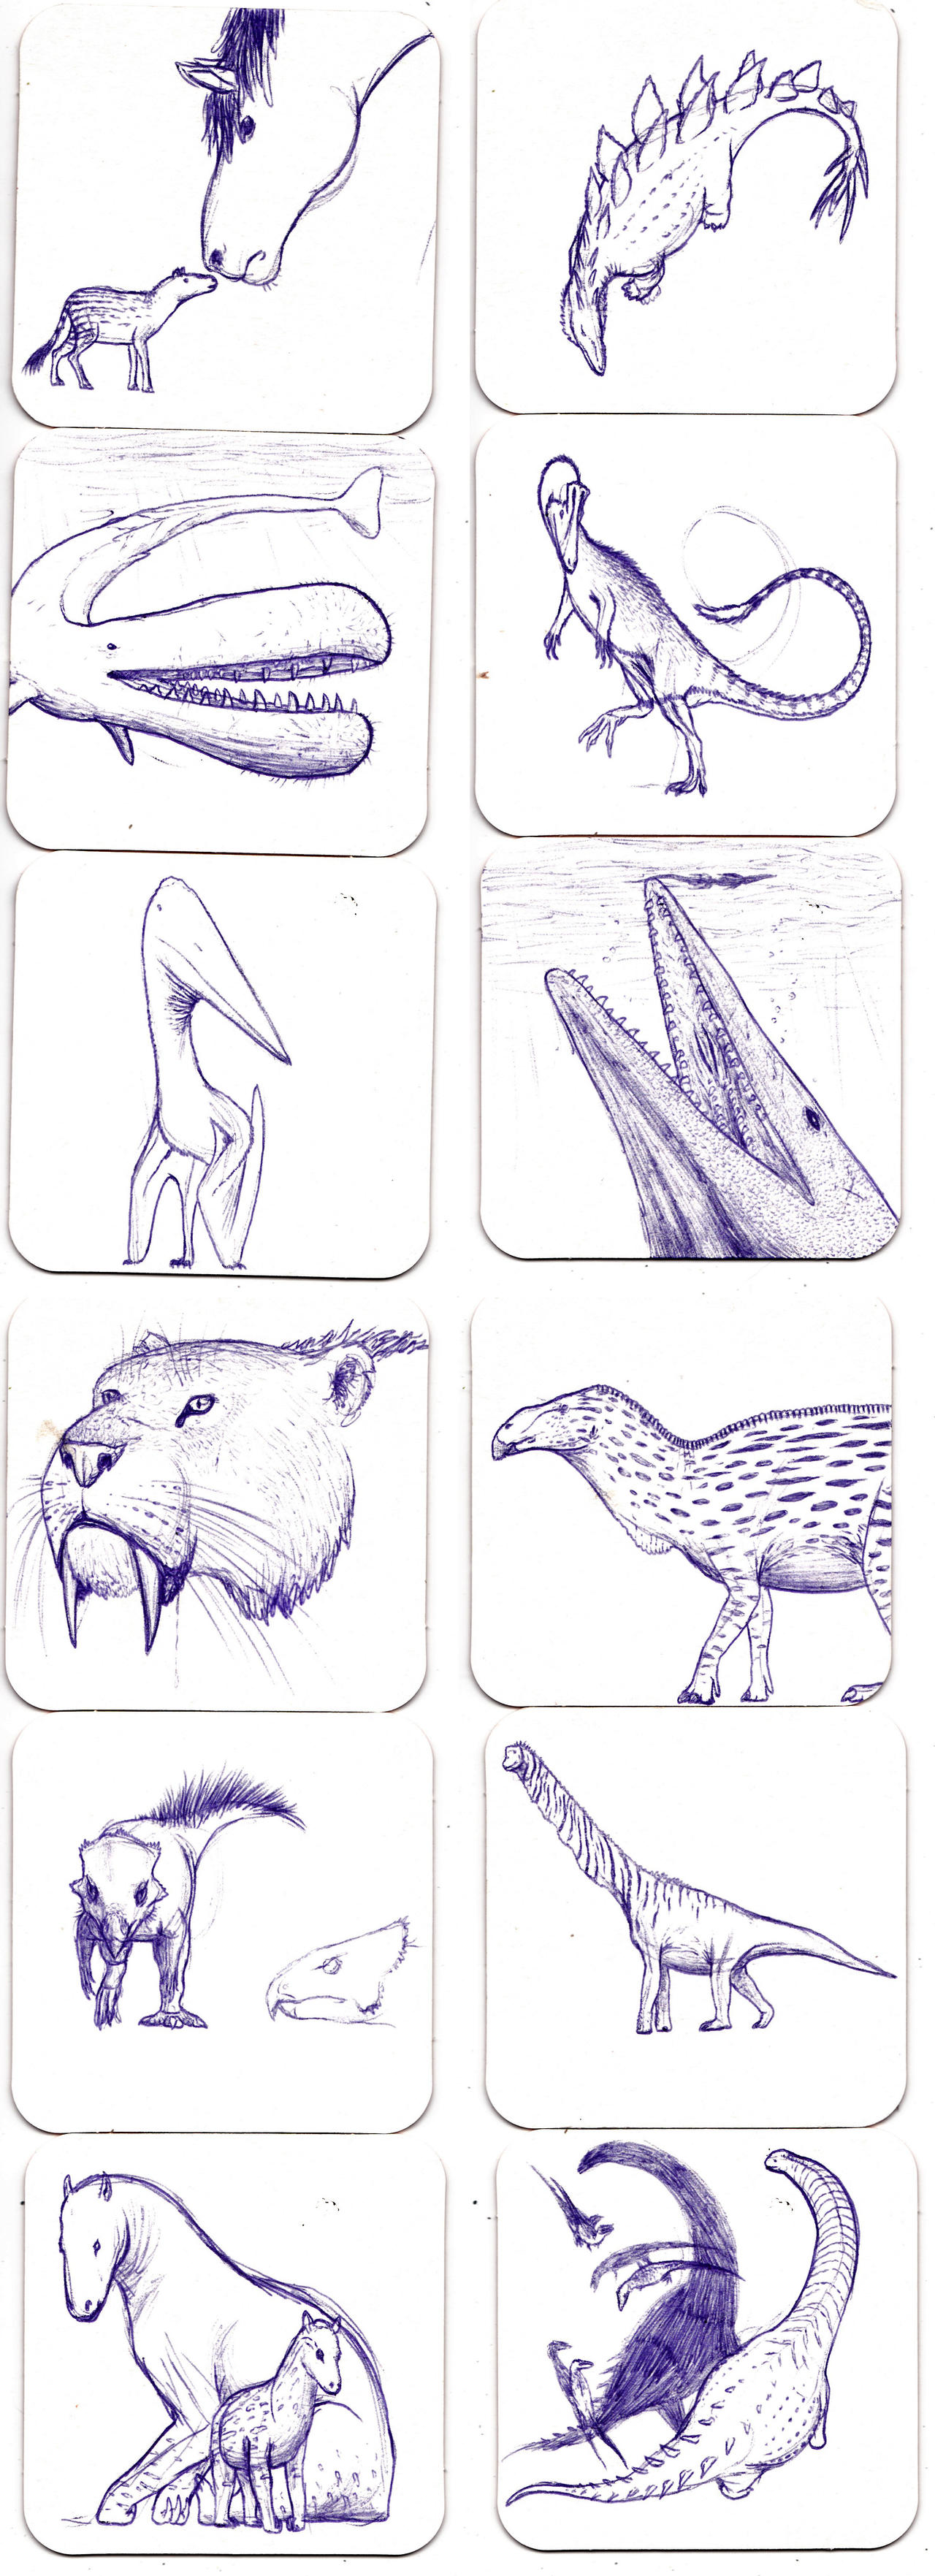 Beer mat sketches by Dontknowwhattodraw94